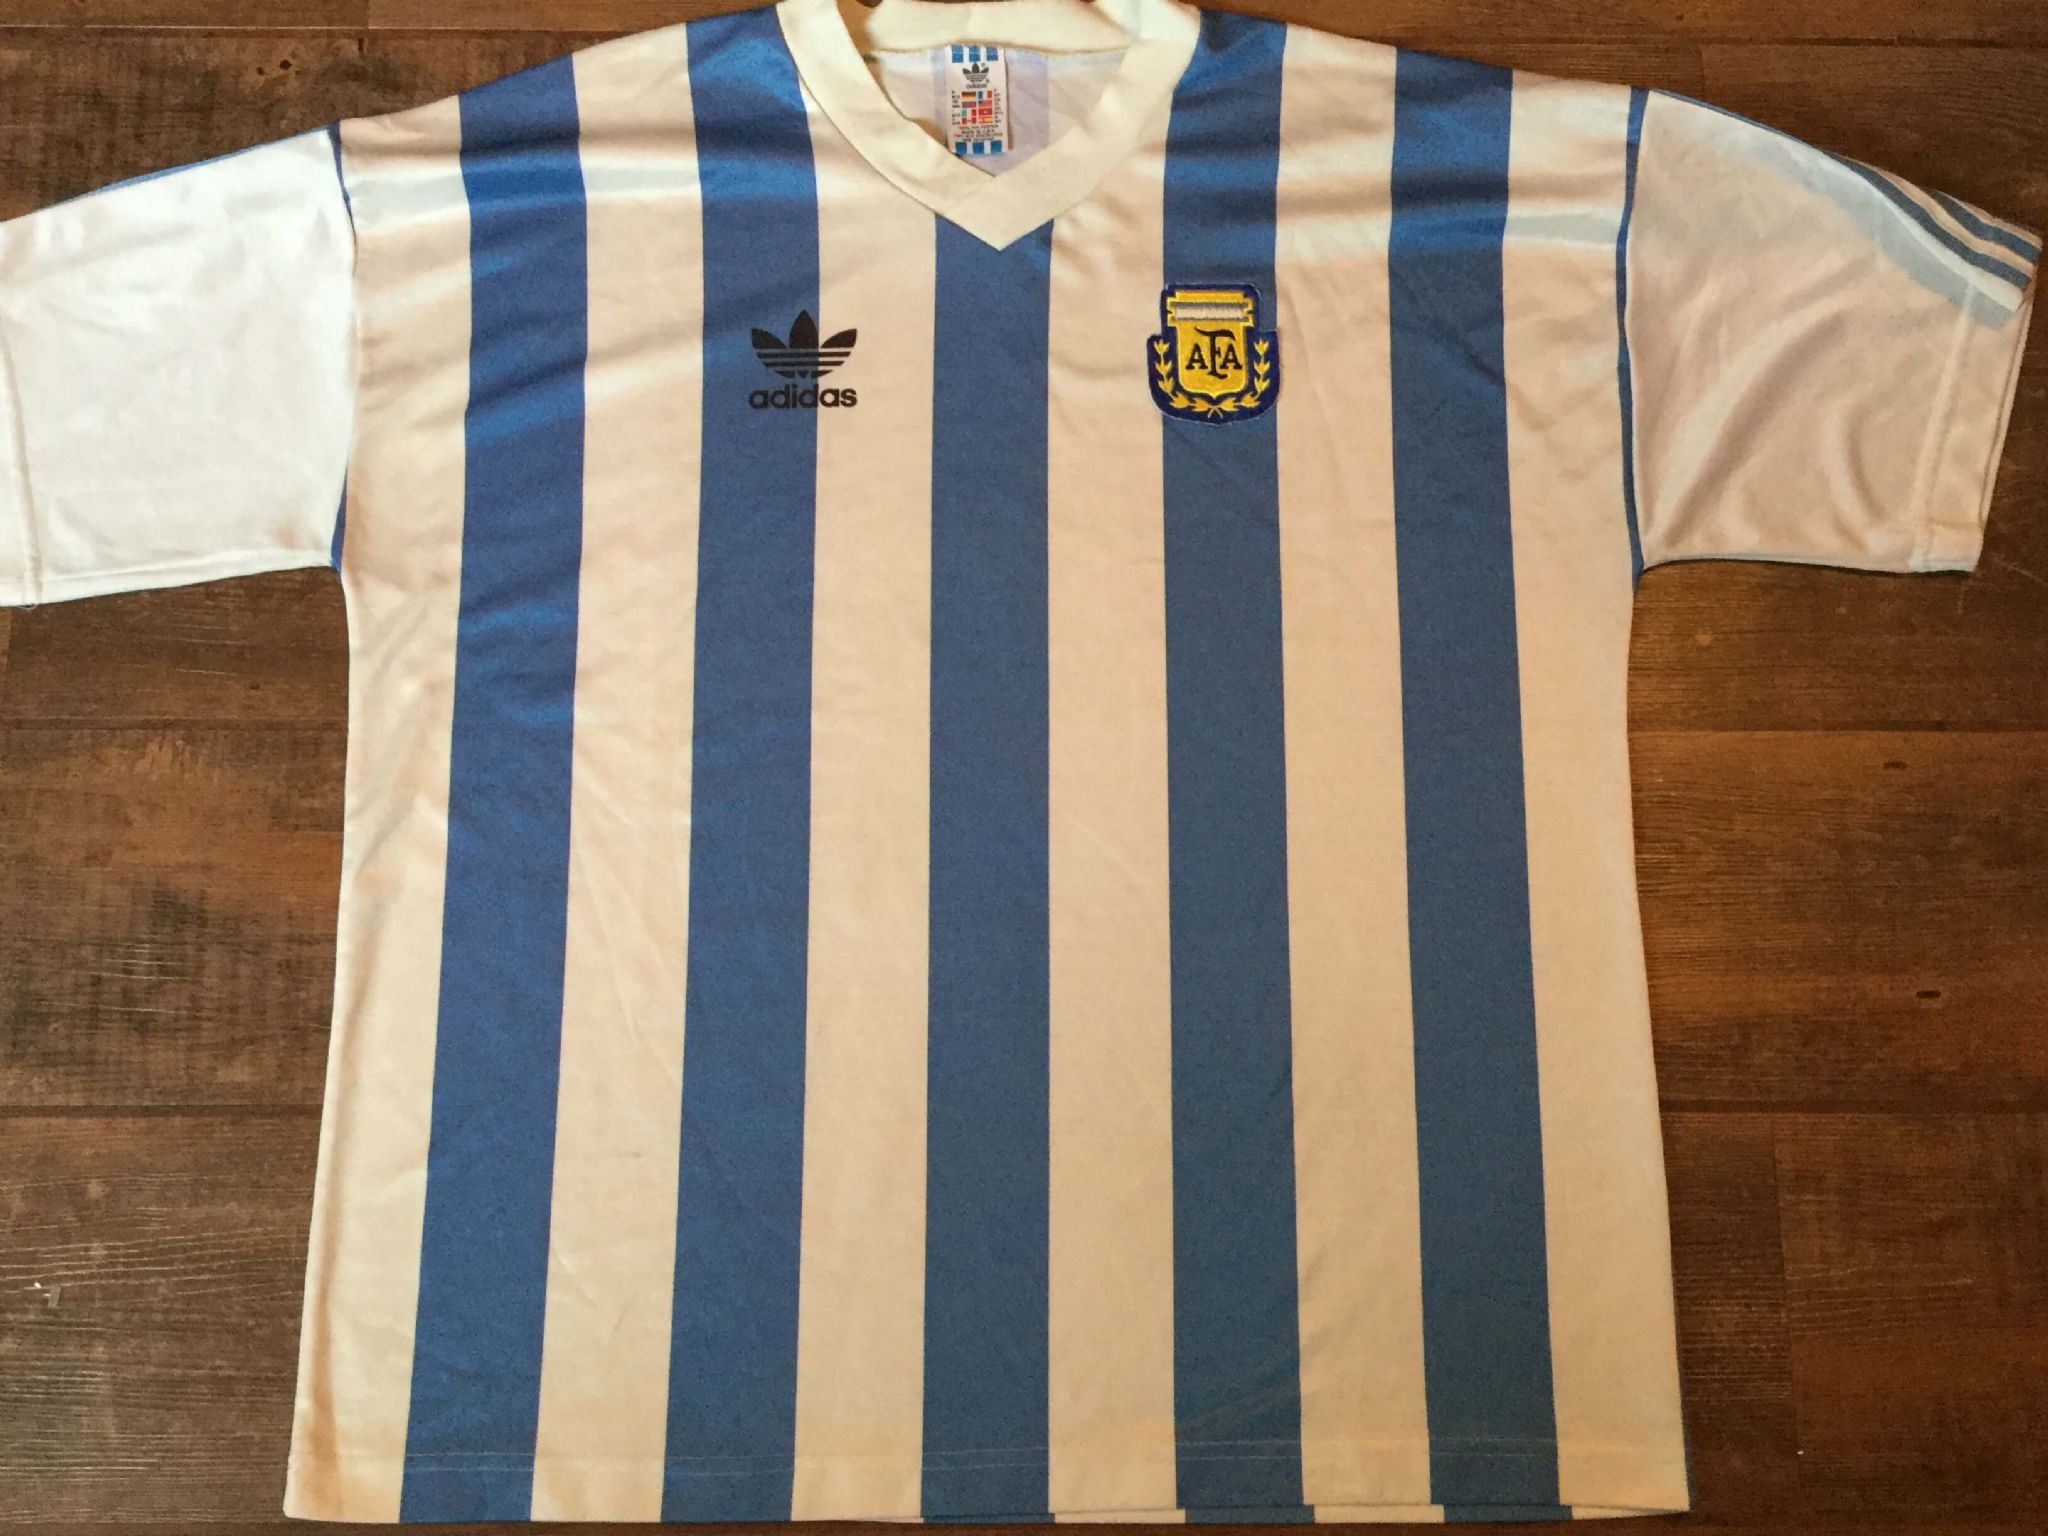 Global Classic Football Shirts 1991 Argentina Vintage Old Soccer Jerseys